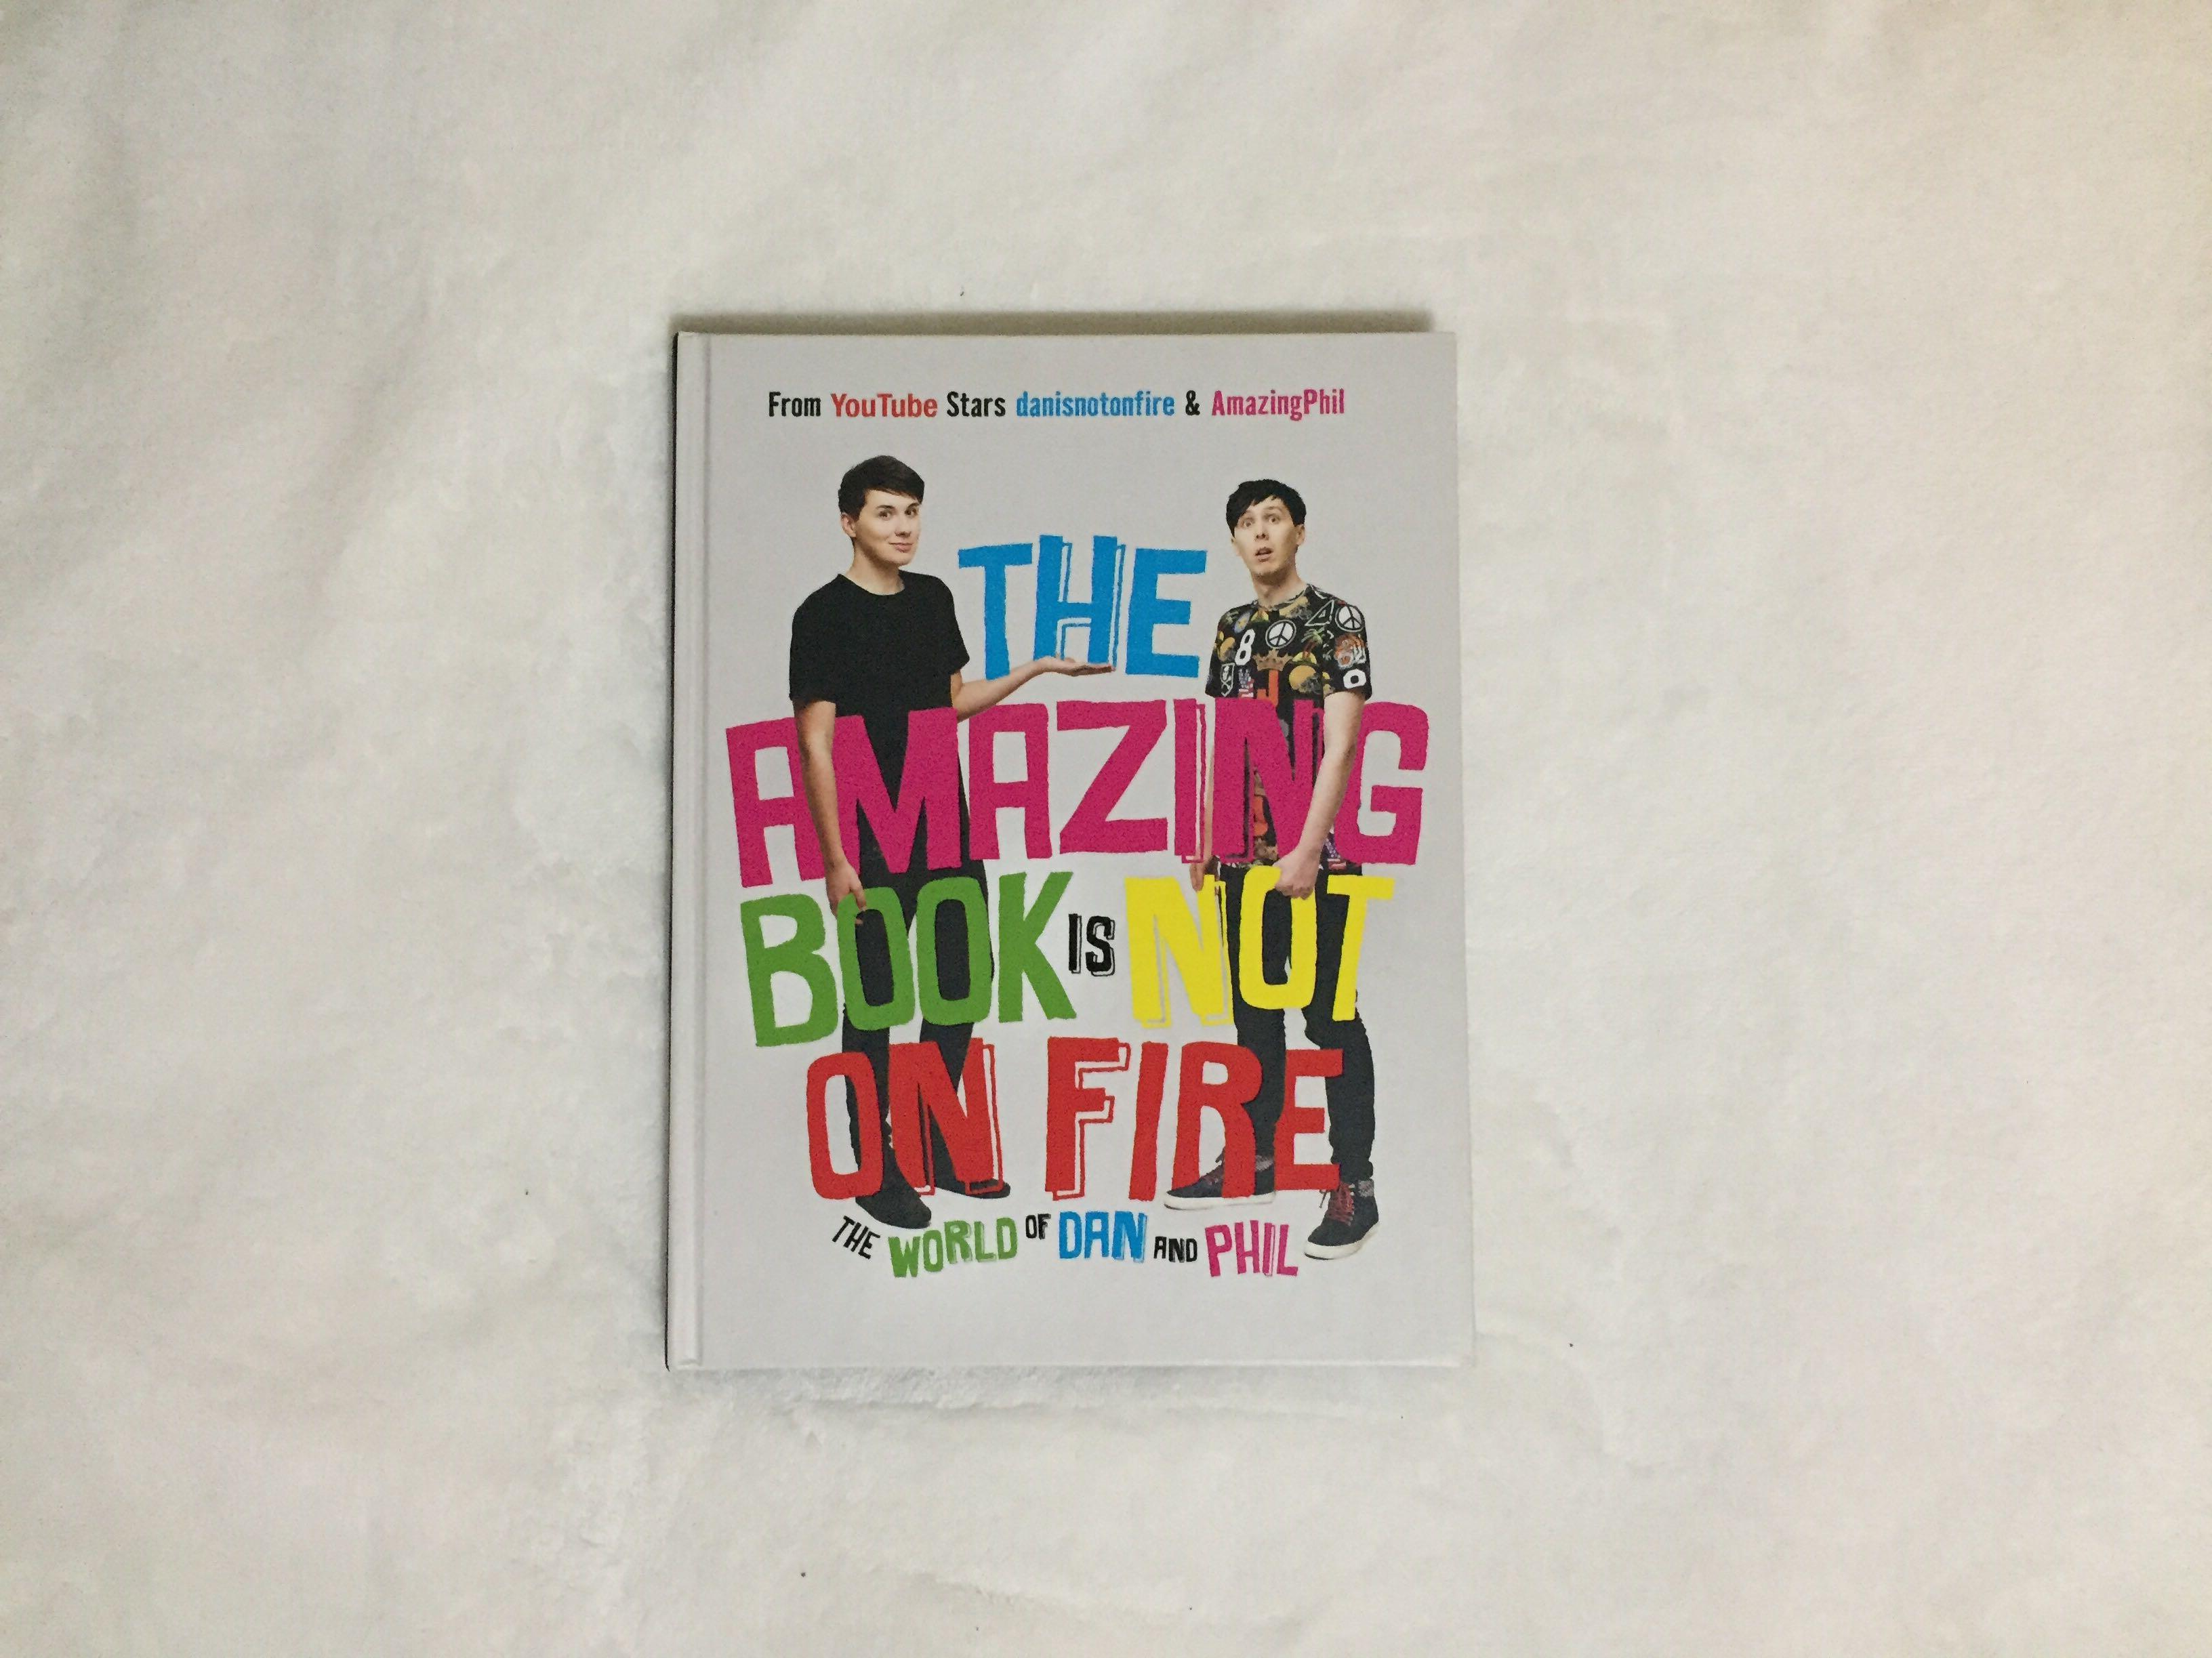 The Amazing Book Is Not On Fire The World of Dan and Phil by AmazingPhil and DanIsNotOnFire